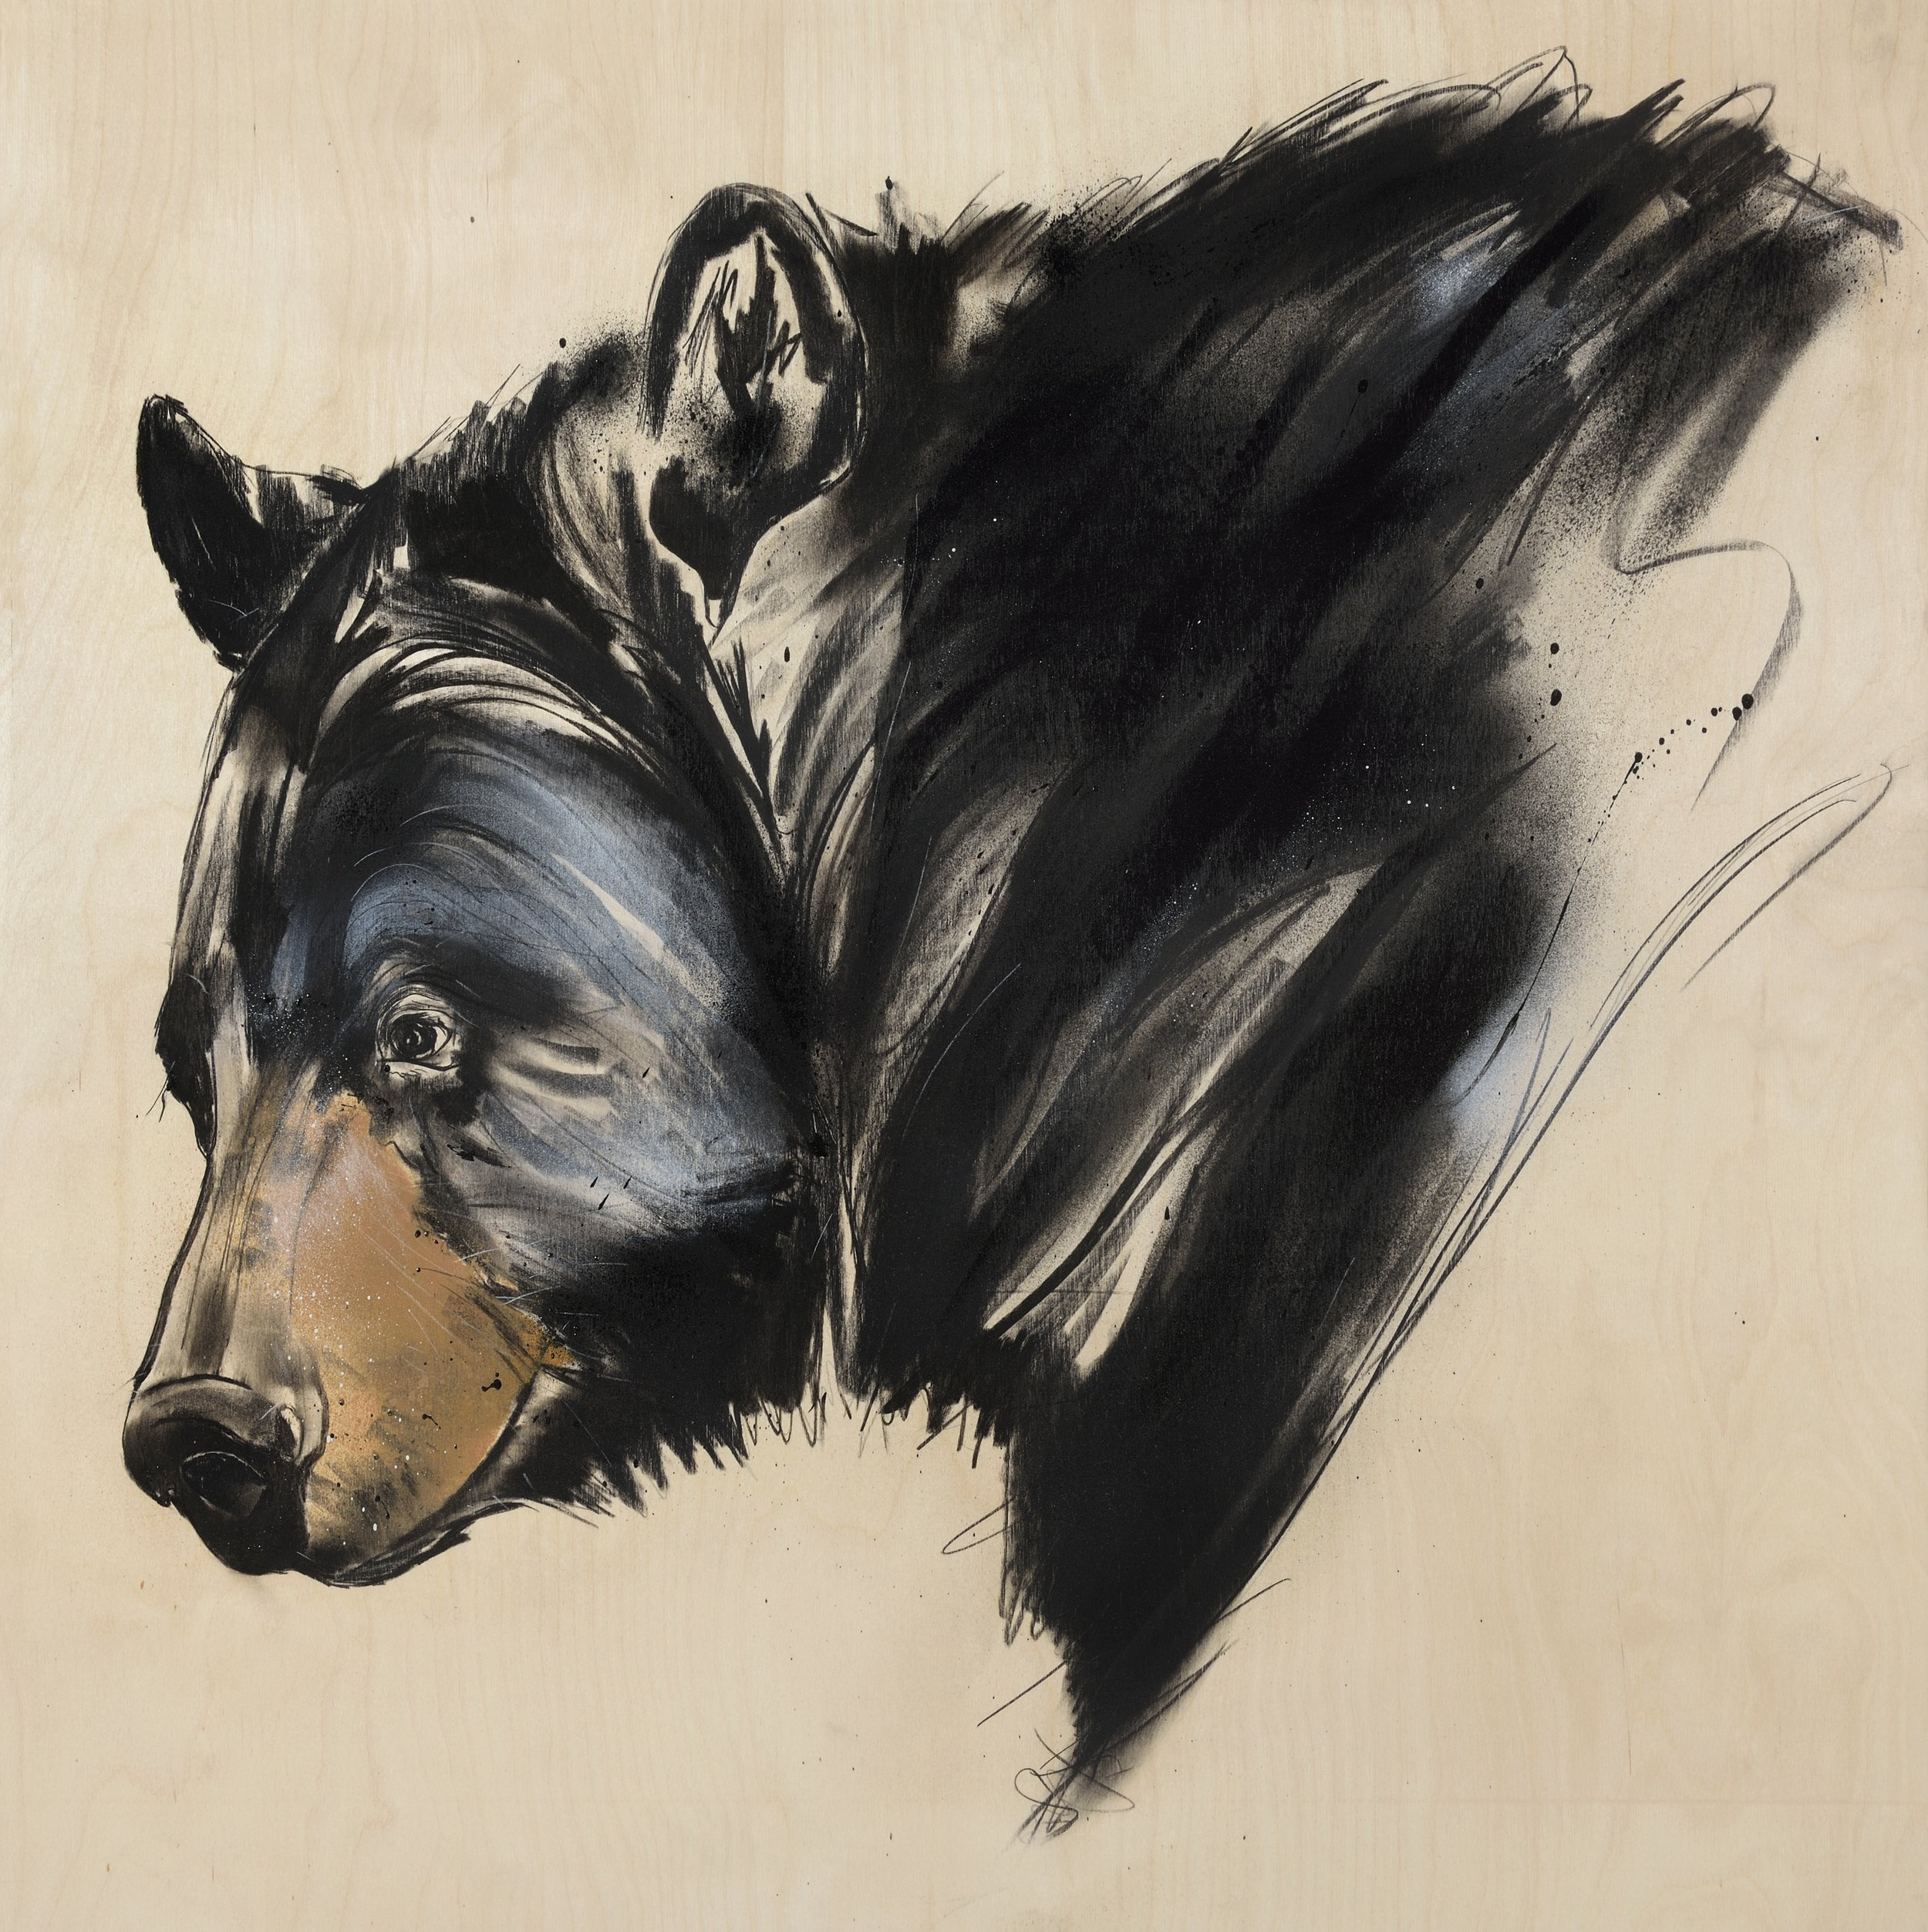 Black Bear                                                                  , Limited edition giclee print of 25 printed on Somerset satin 330gsm enhanced paper with deckled edges.